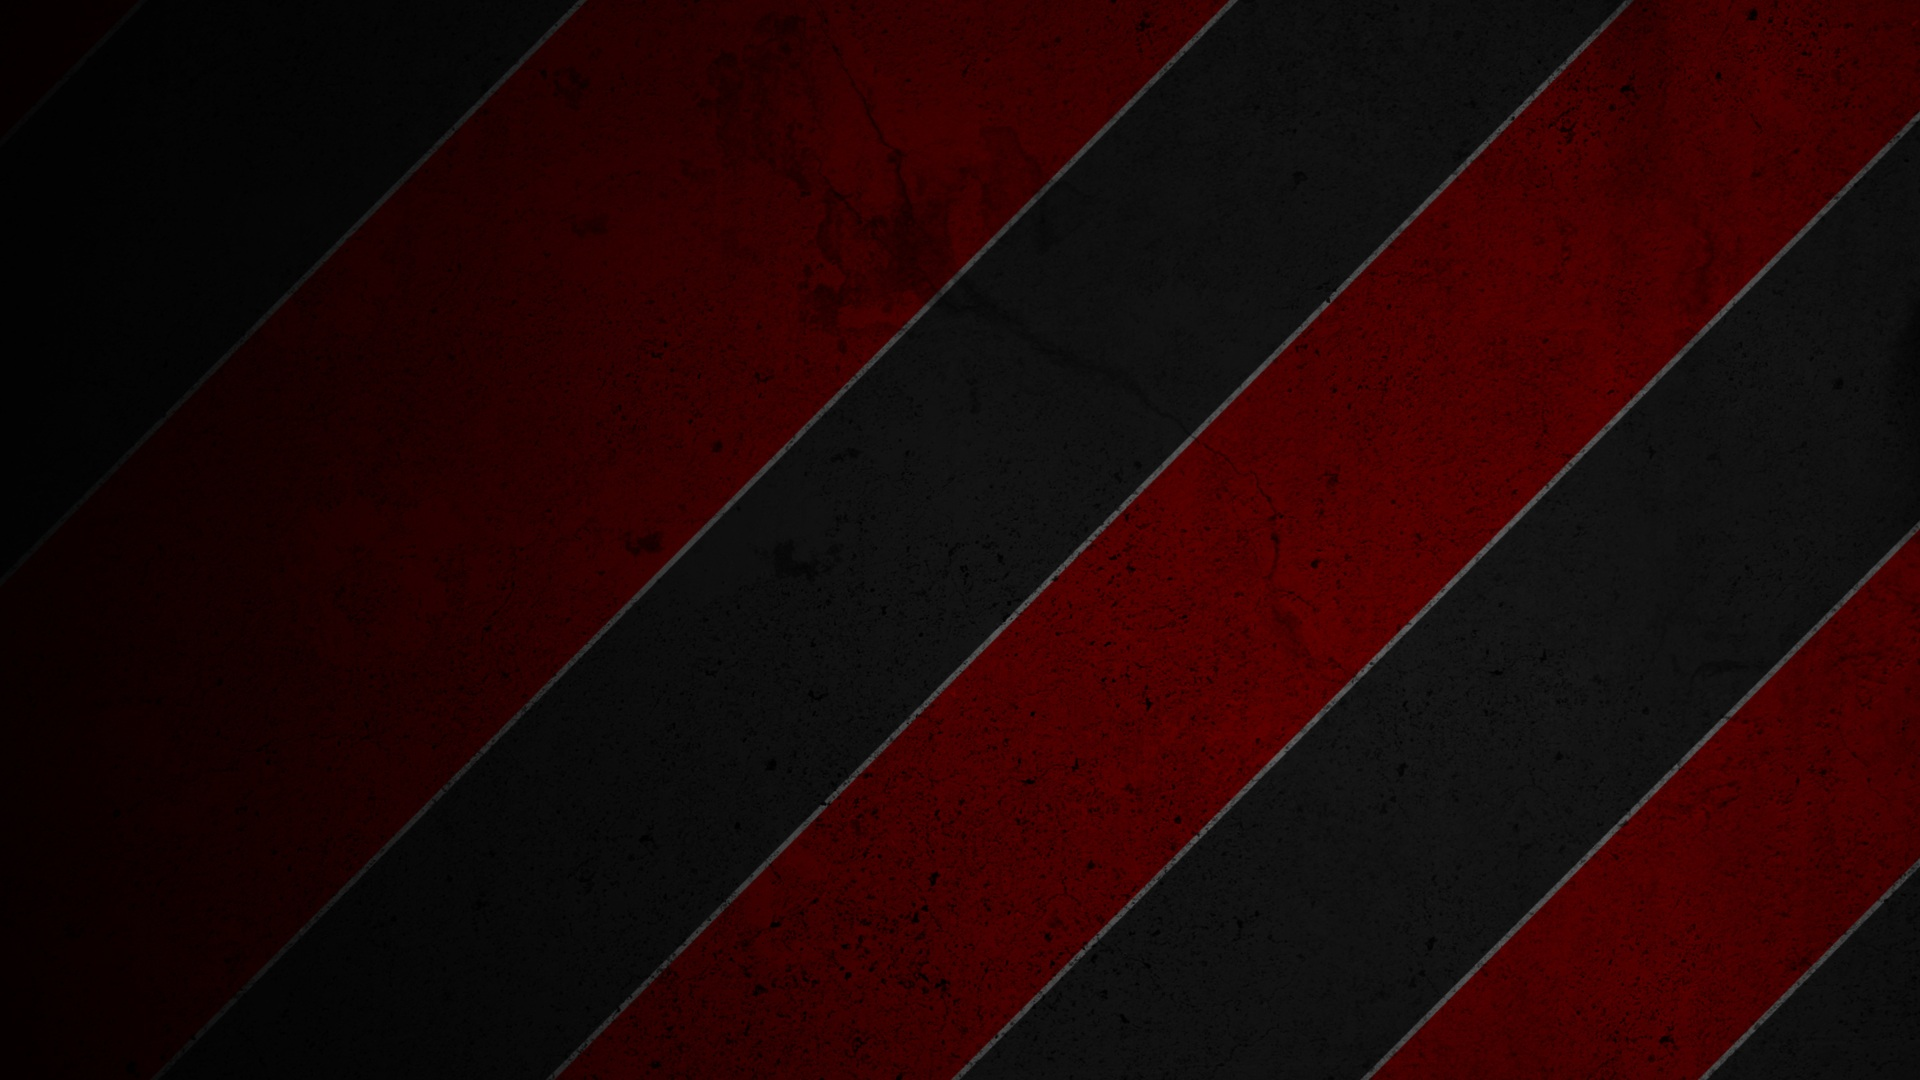 Striped dark black and red background by Nekokiseki 1920x1080